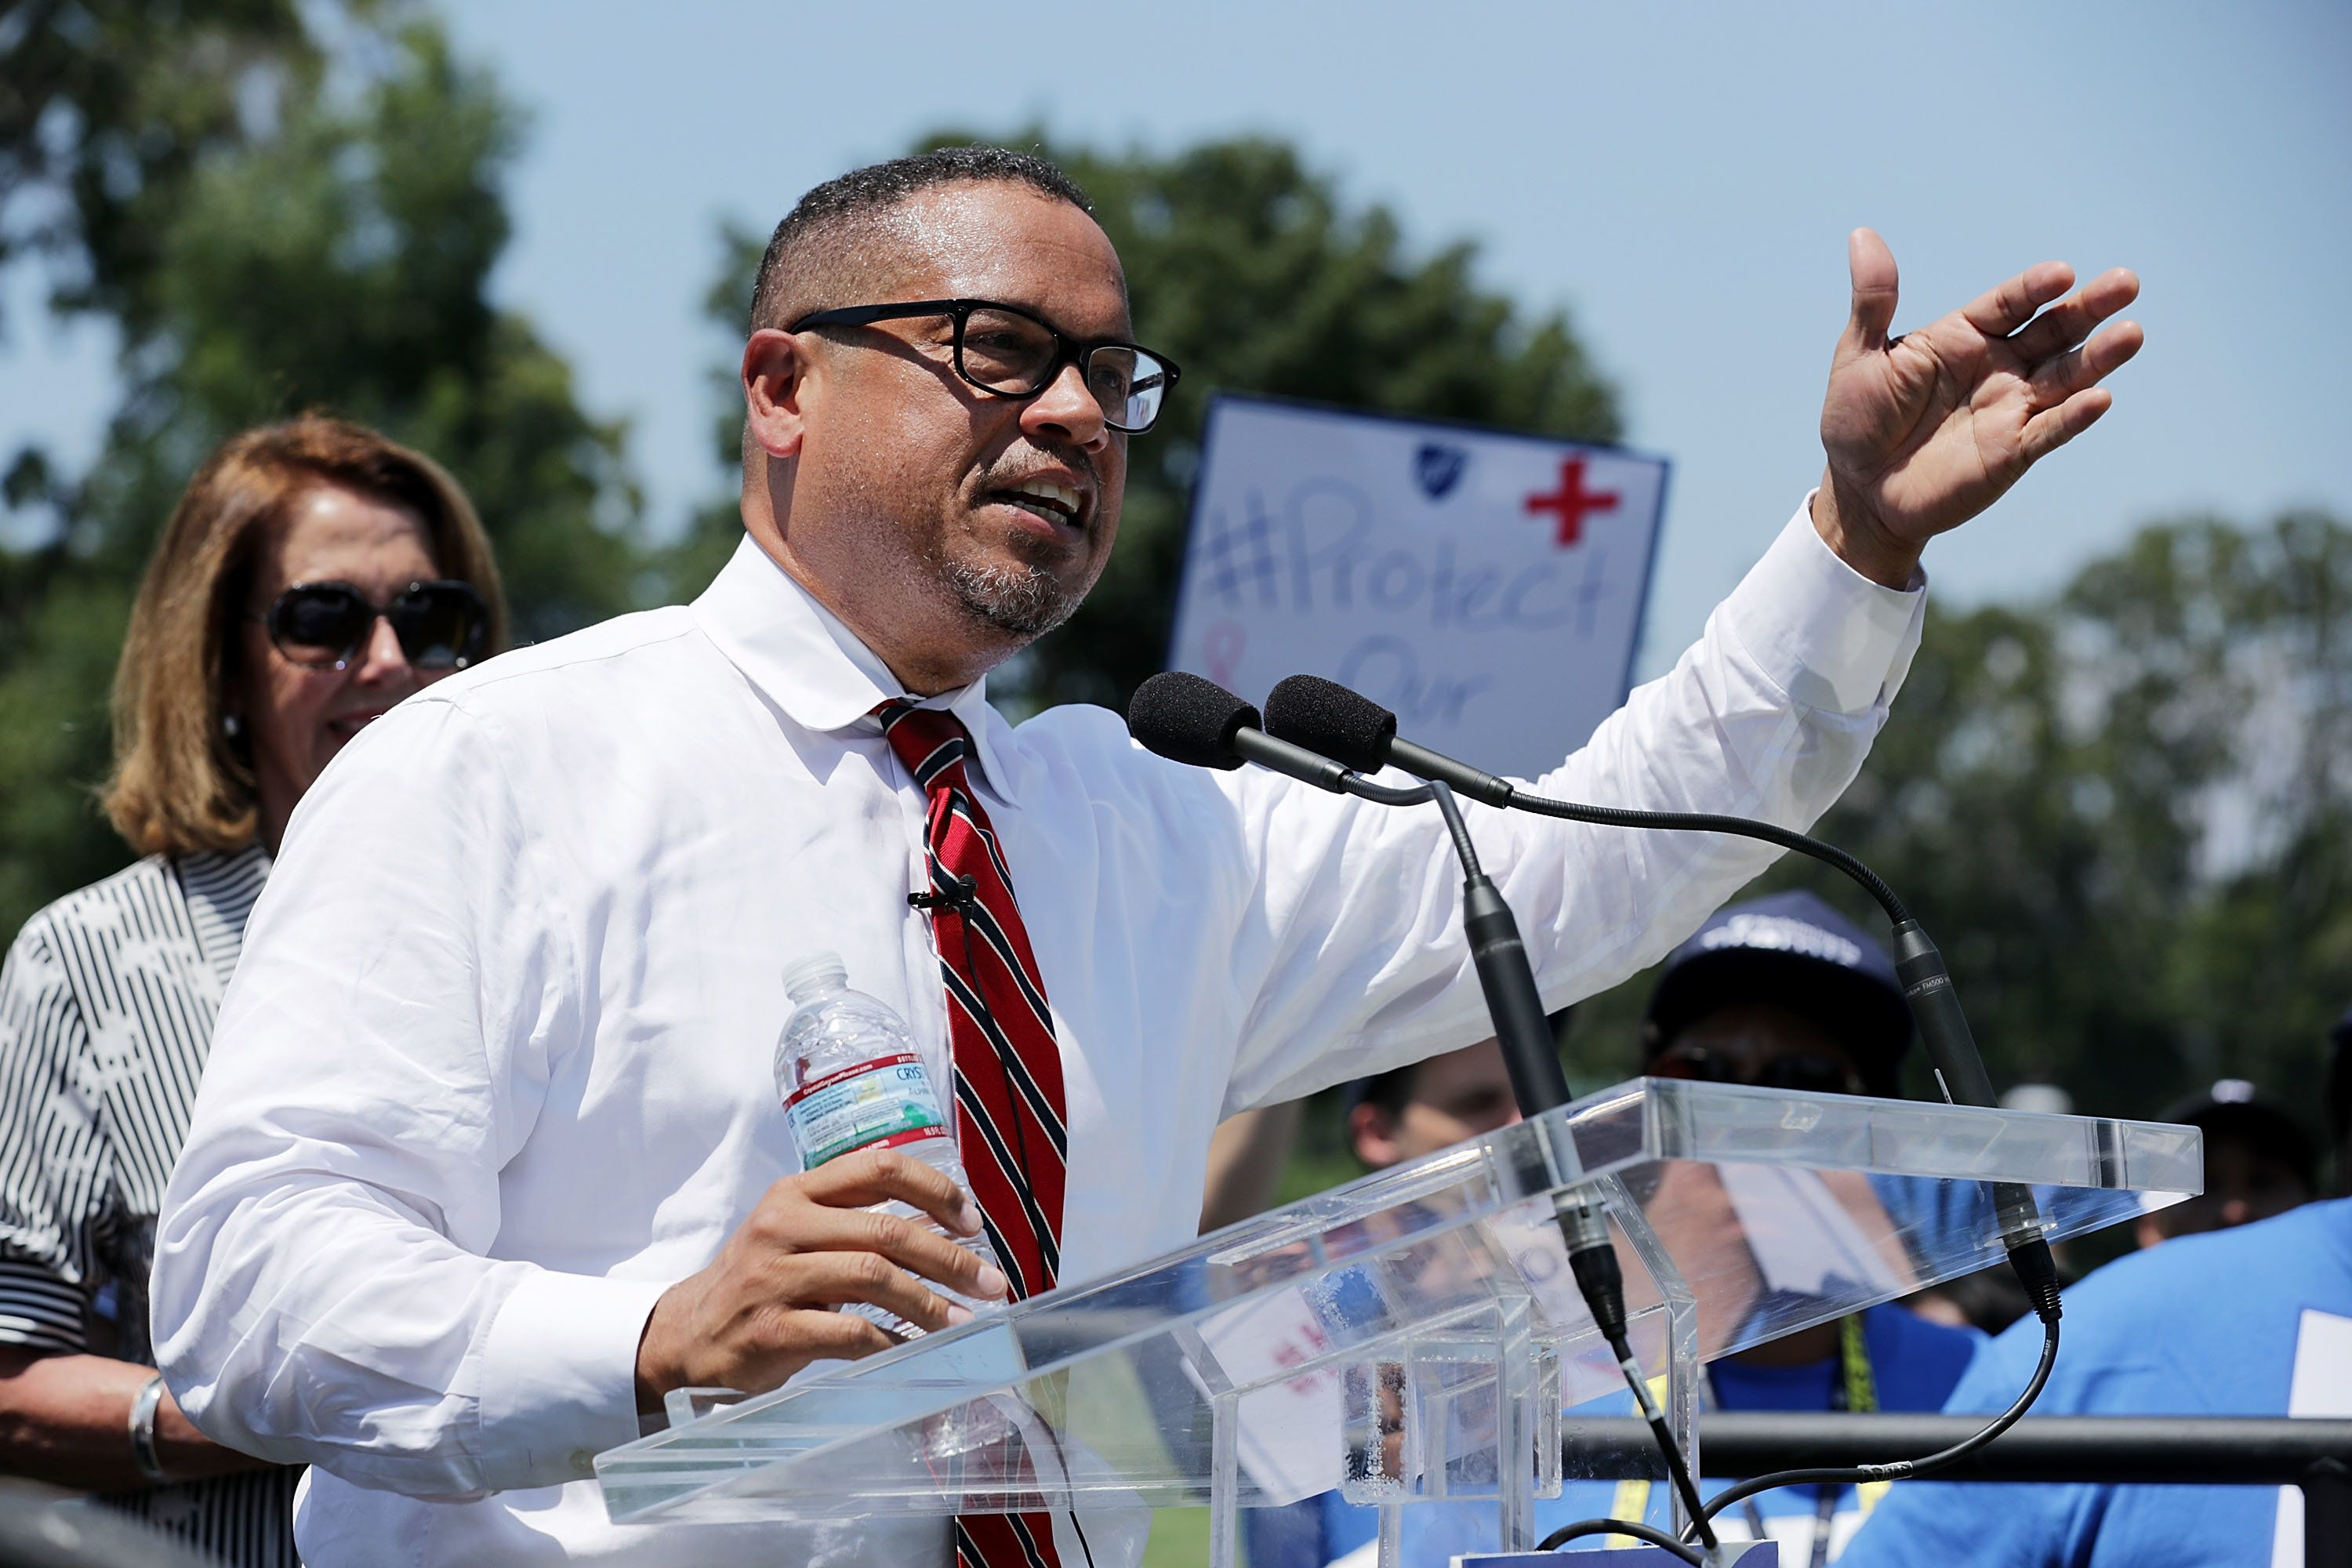 WASHINGTON, DC - JULY 19:  Democratic National Committee Deputy Chairman Rep. Keith Ellison (D-MN) addresses a rally against Trump Administration education funding cuts outside the U.S. Capitol July 19, 2017 in Washington, DC. Democratic members of Congress also addressed the rally, which was organized by the American Federation of Teachers, the AFL-CIO and the American Federation of State, County and Municipal Employees.  (Photo by Chip Somodevilla/Getty Images)